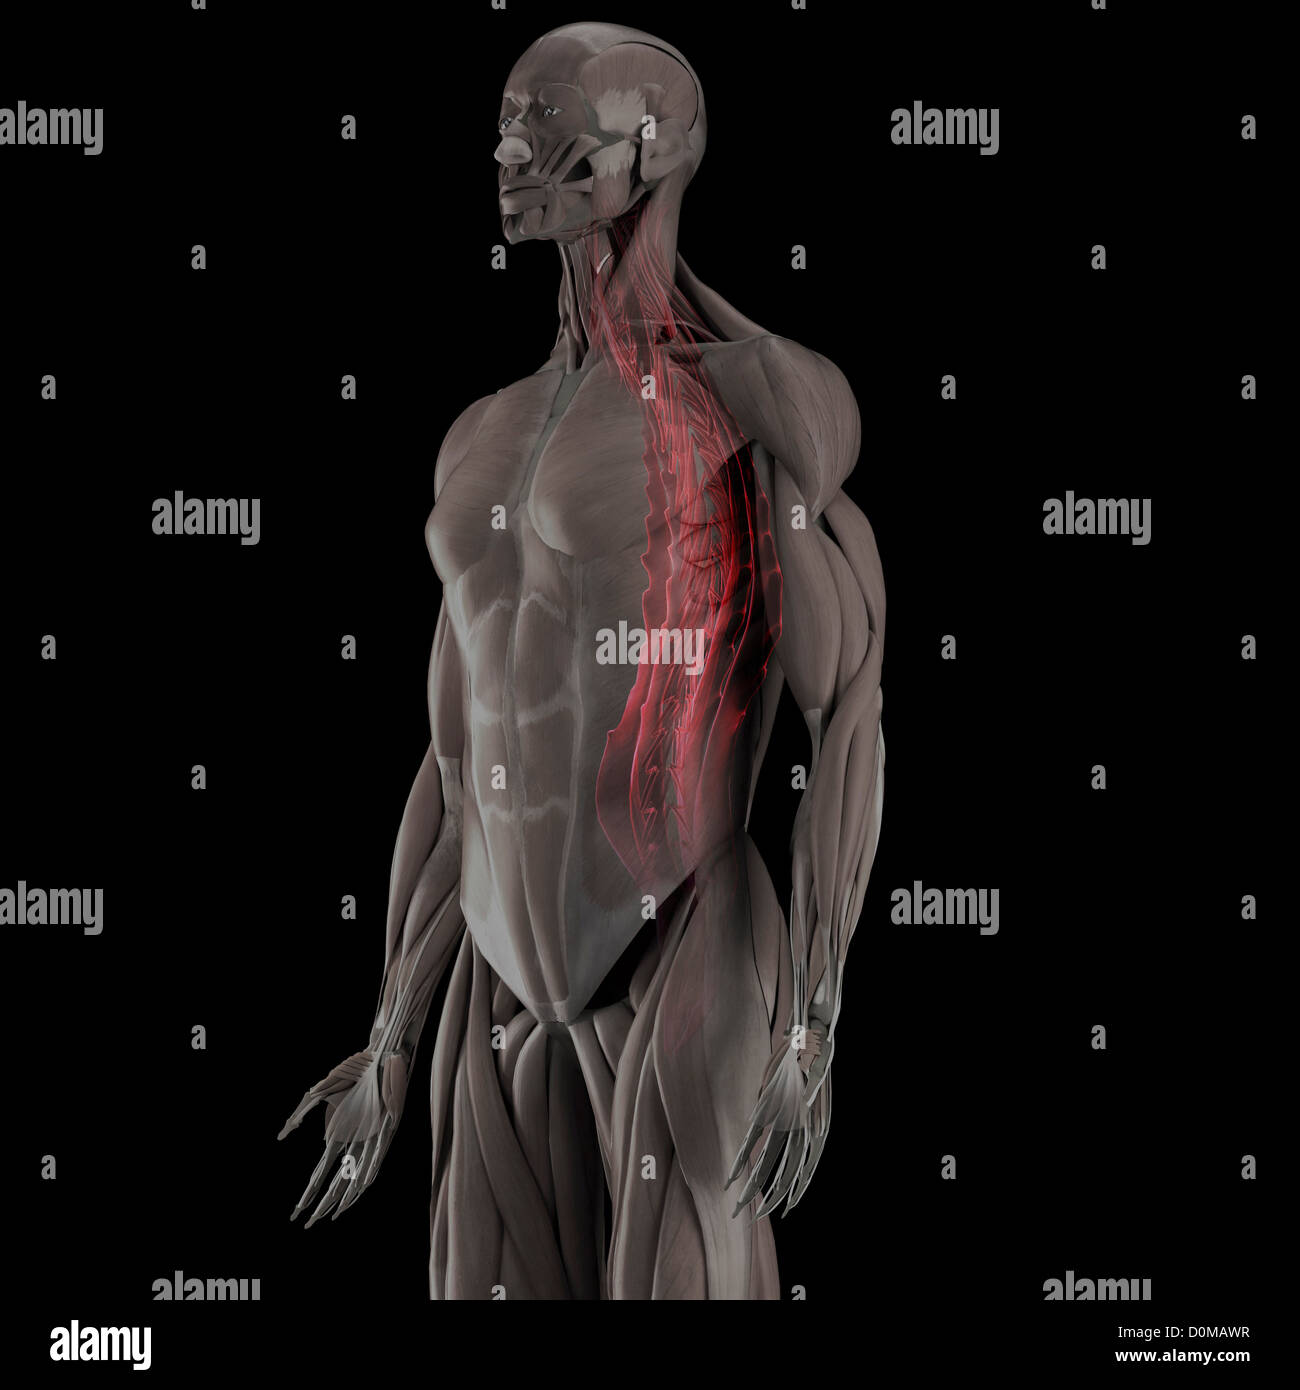 Anatomical Model Showing The Human Muscular System And Stock Photo